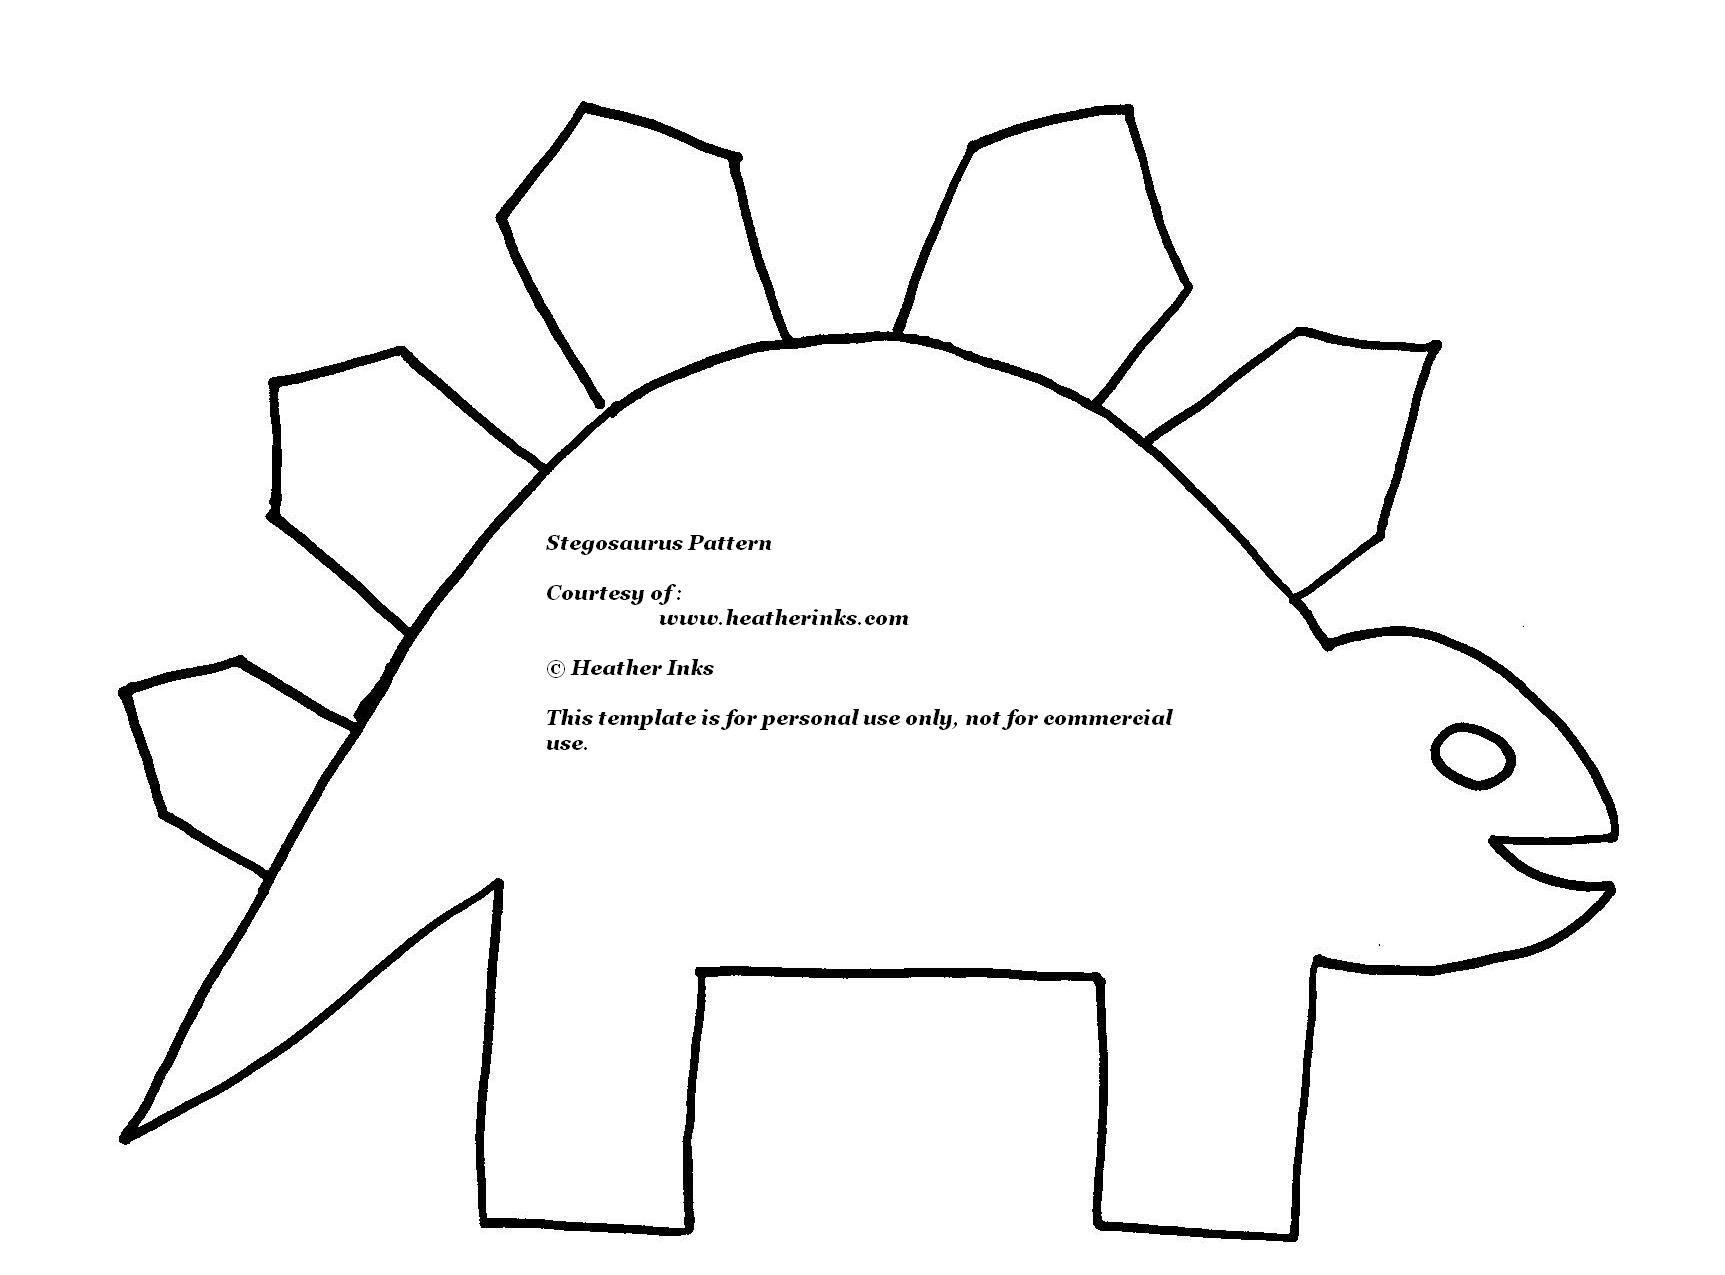 Stegosaurus template clipart best for Dinosaur templates to print